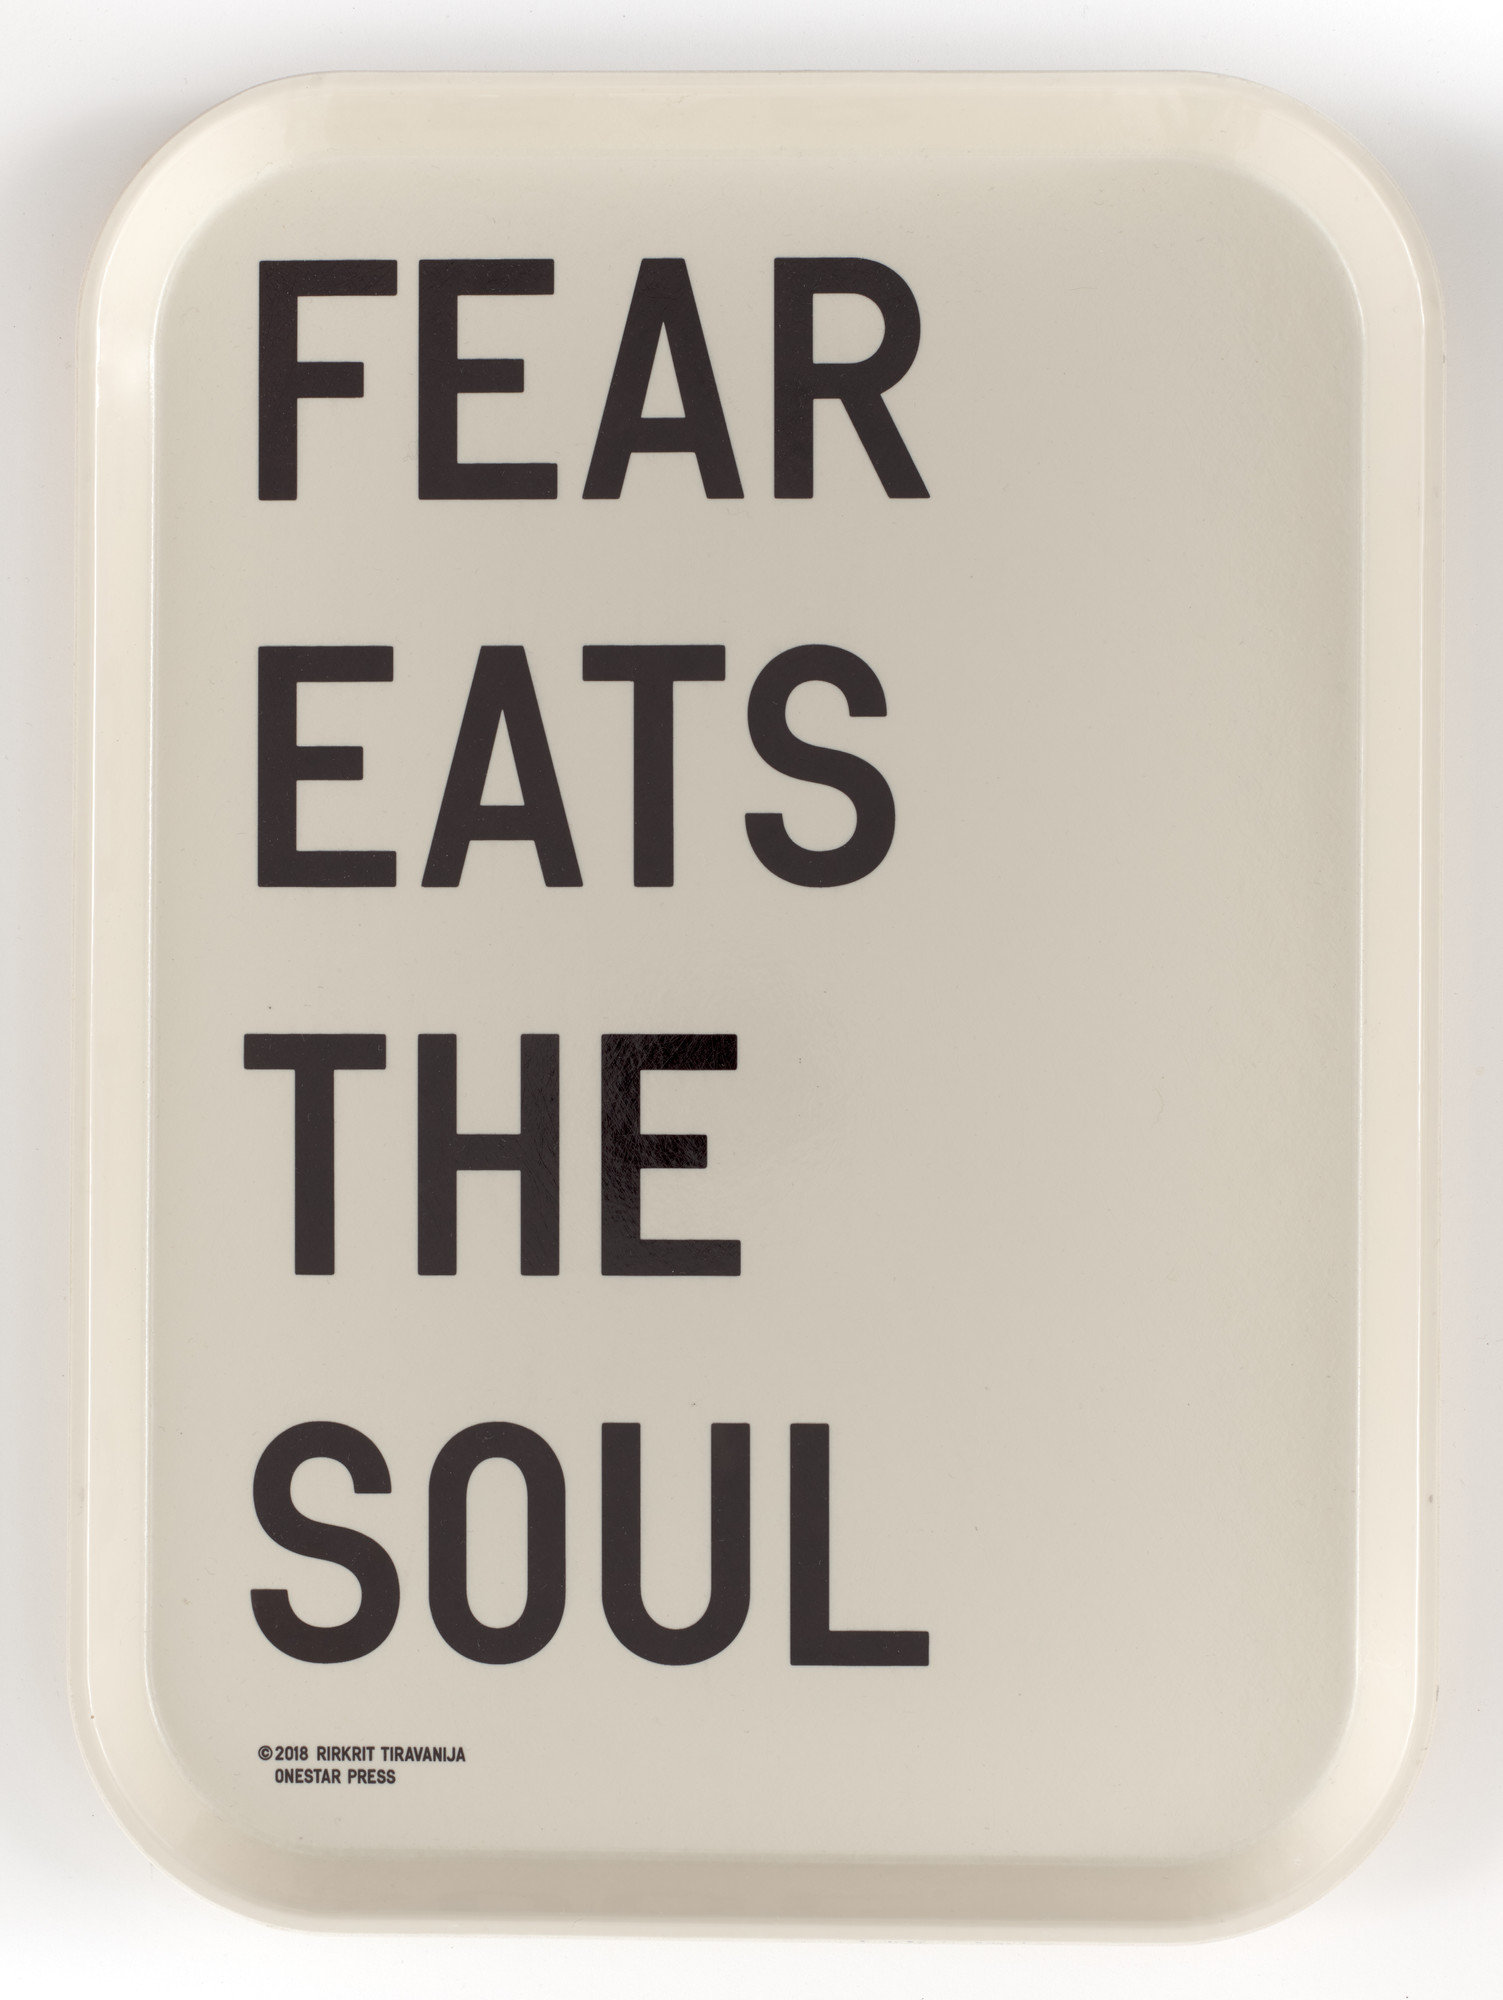 Rirkrit Tiravanija. FEAR EATS THE SOUL. 2018